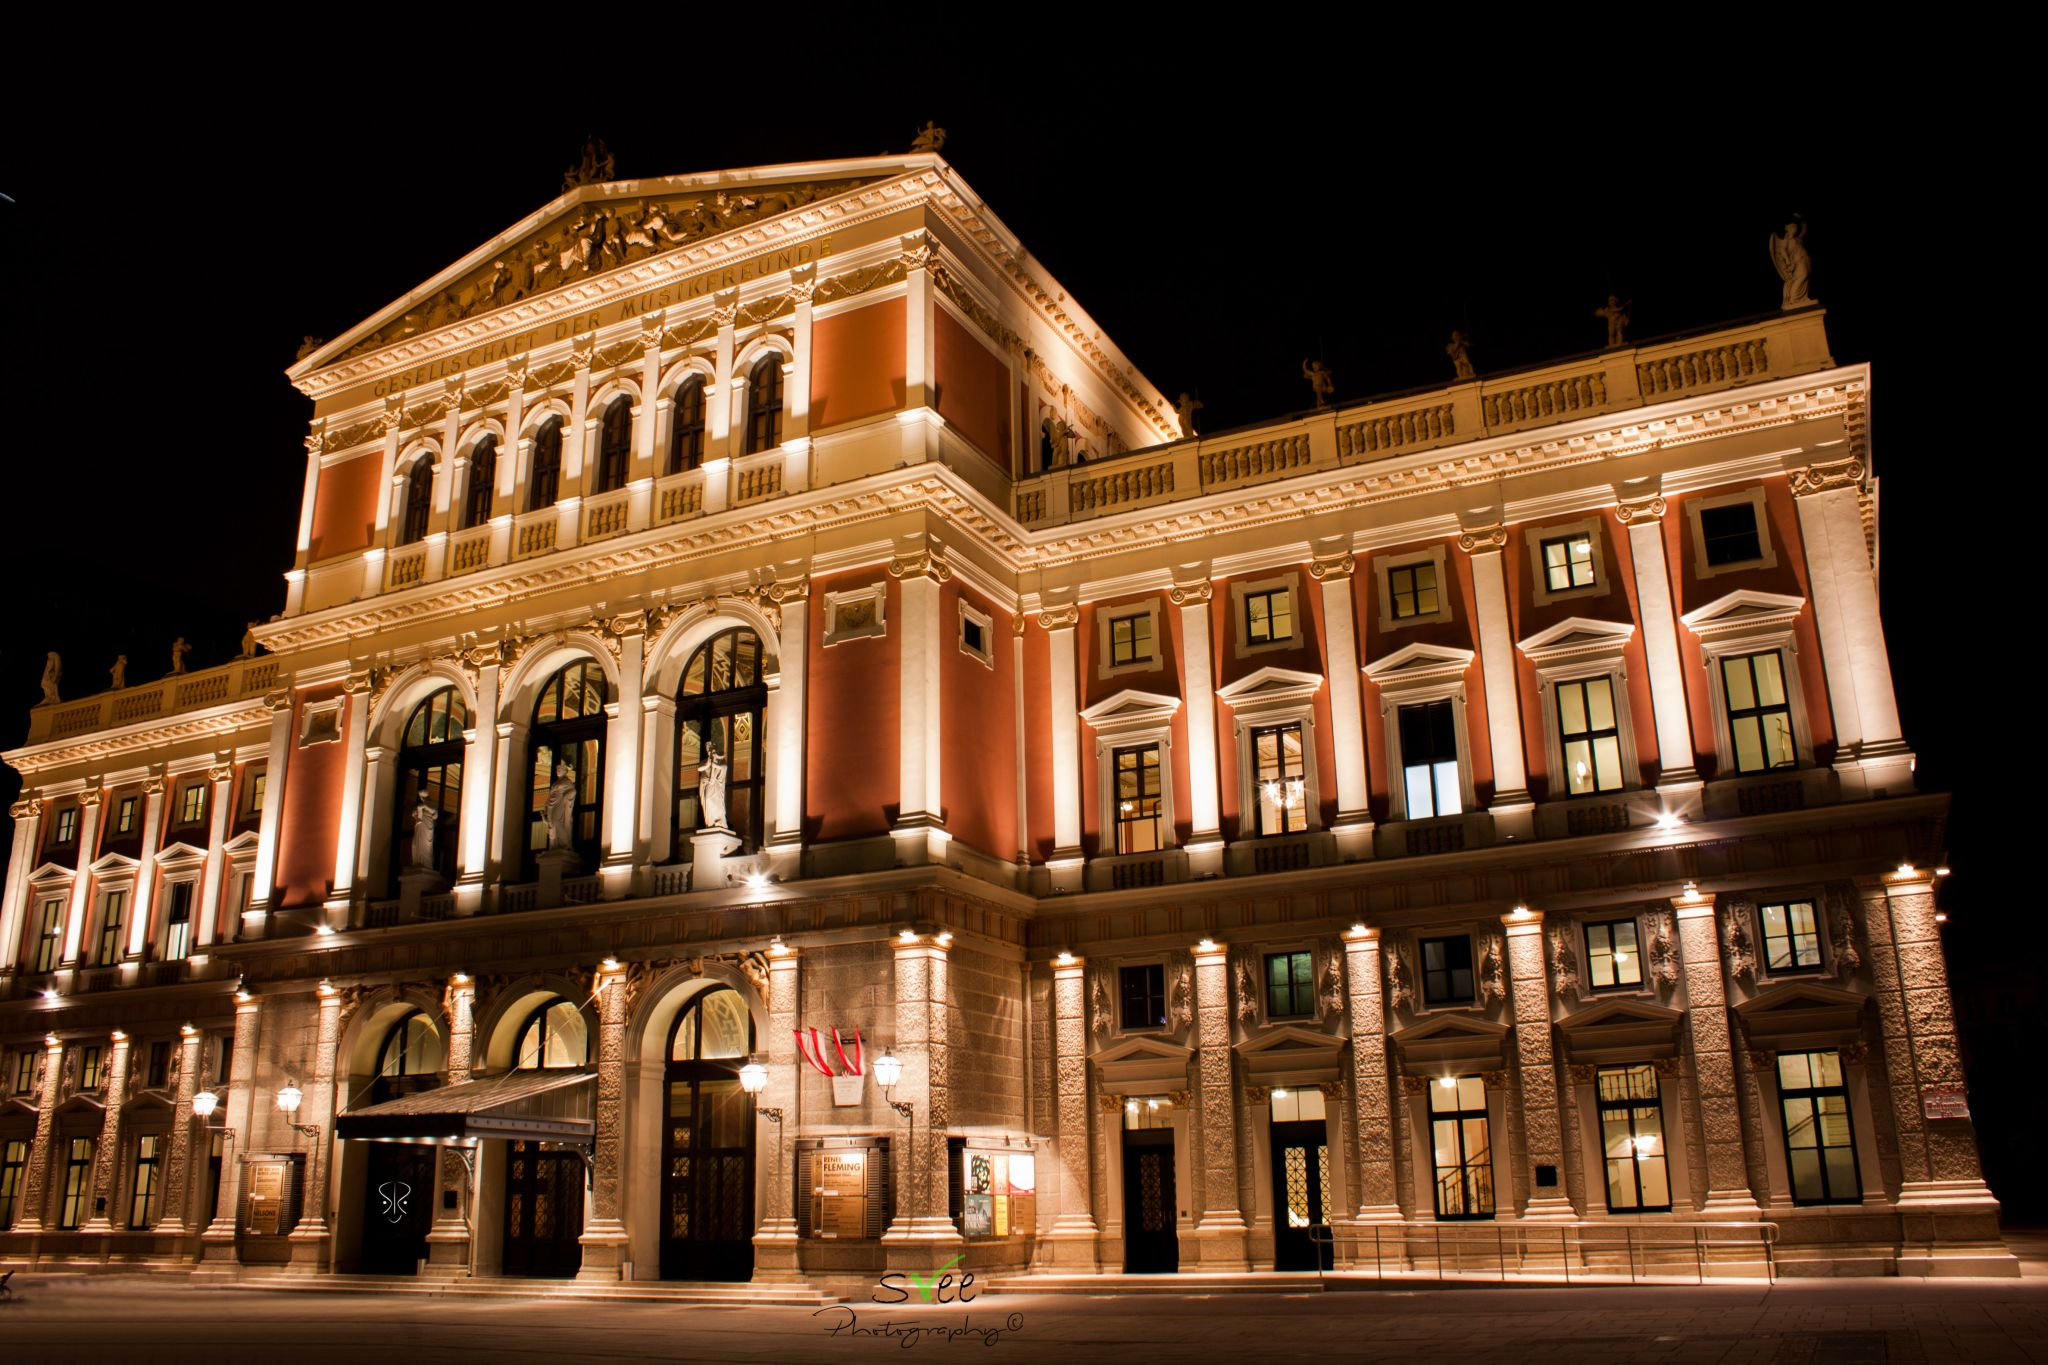 Vienna Music Hall, Austria